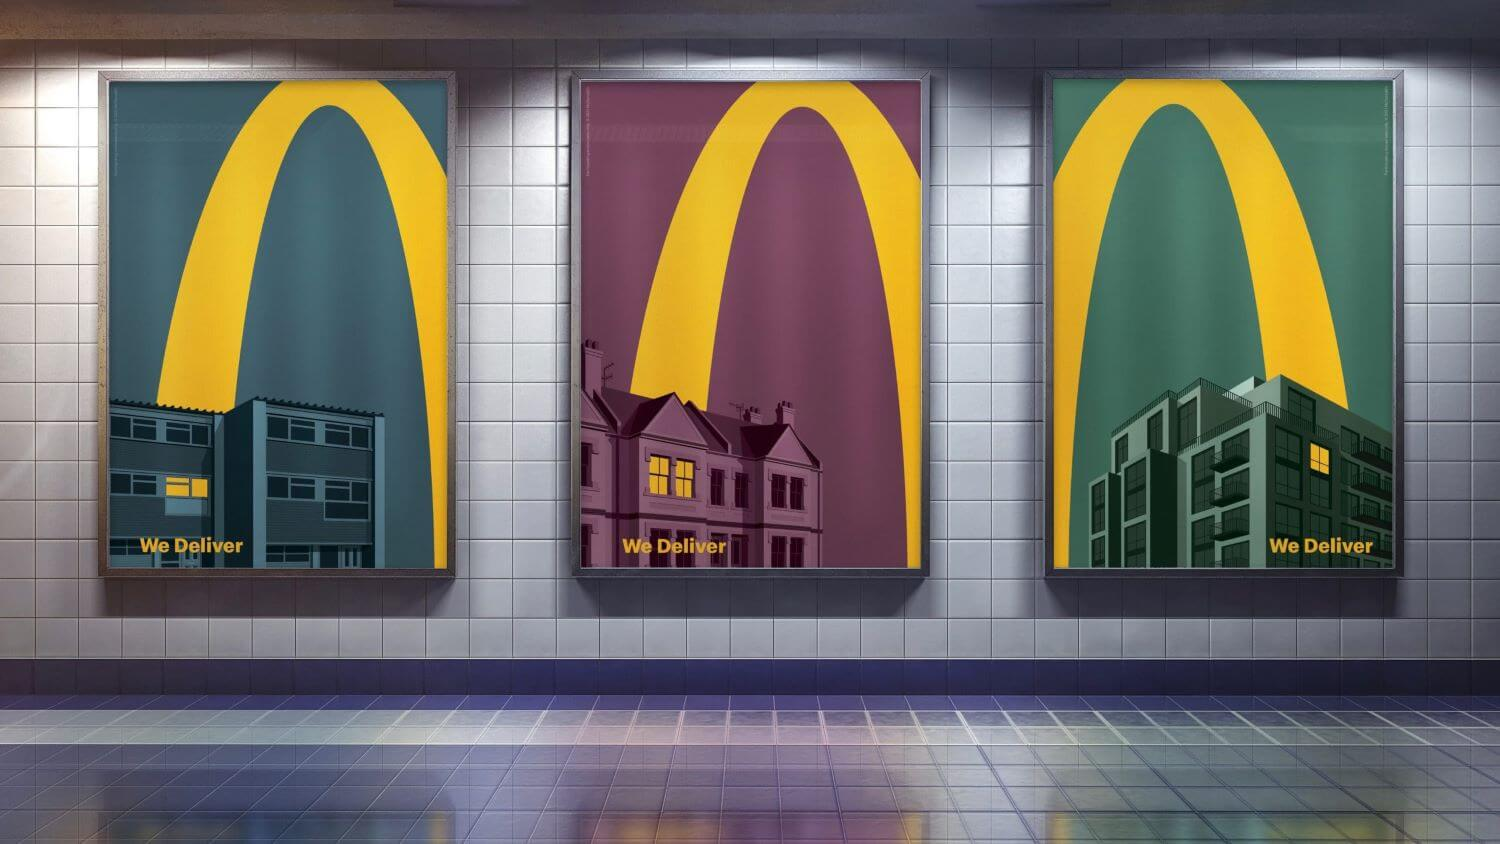 Mcdonalds - The Most Iconic Logos of The 20th Century